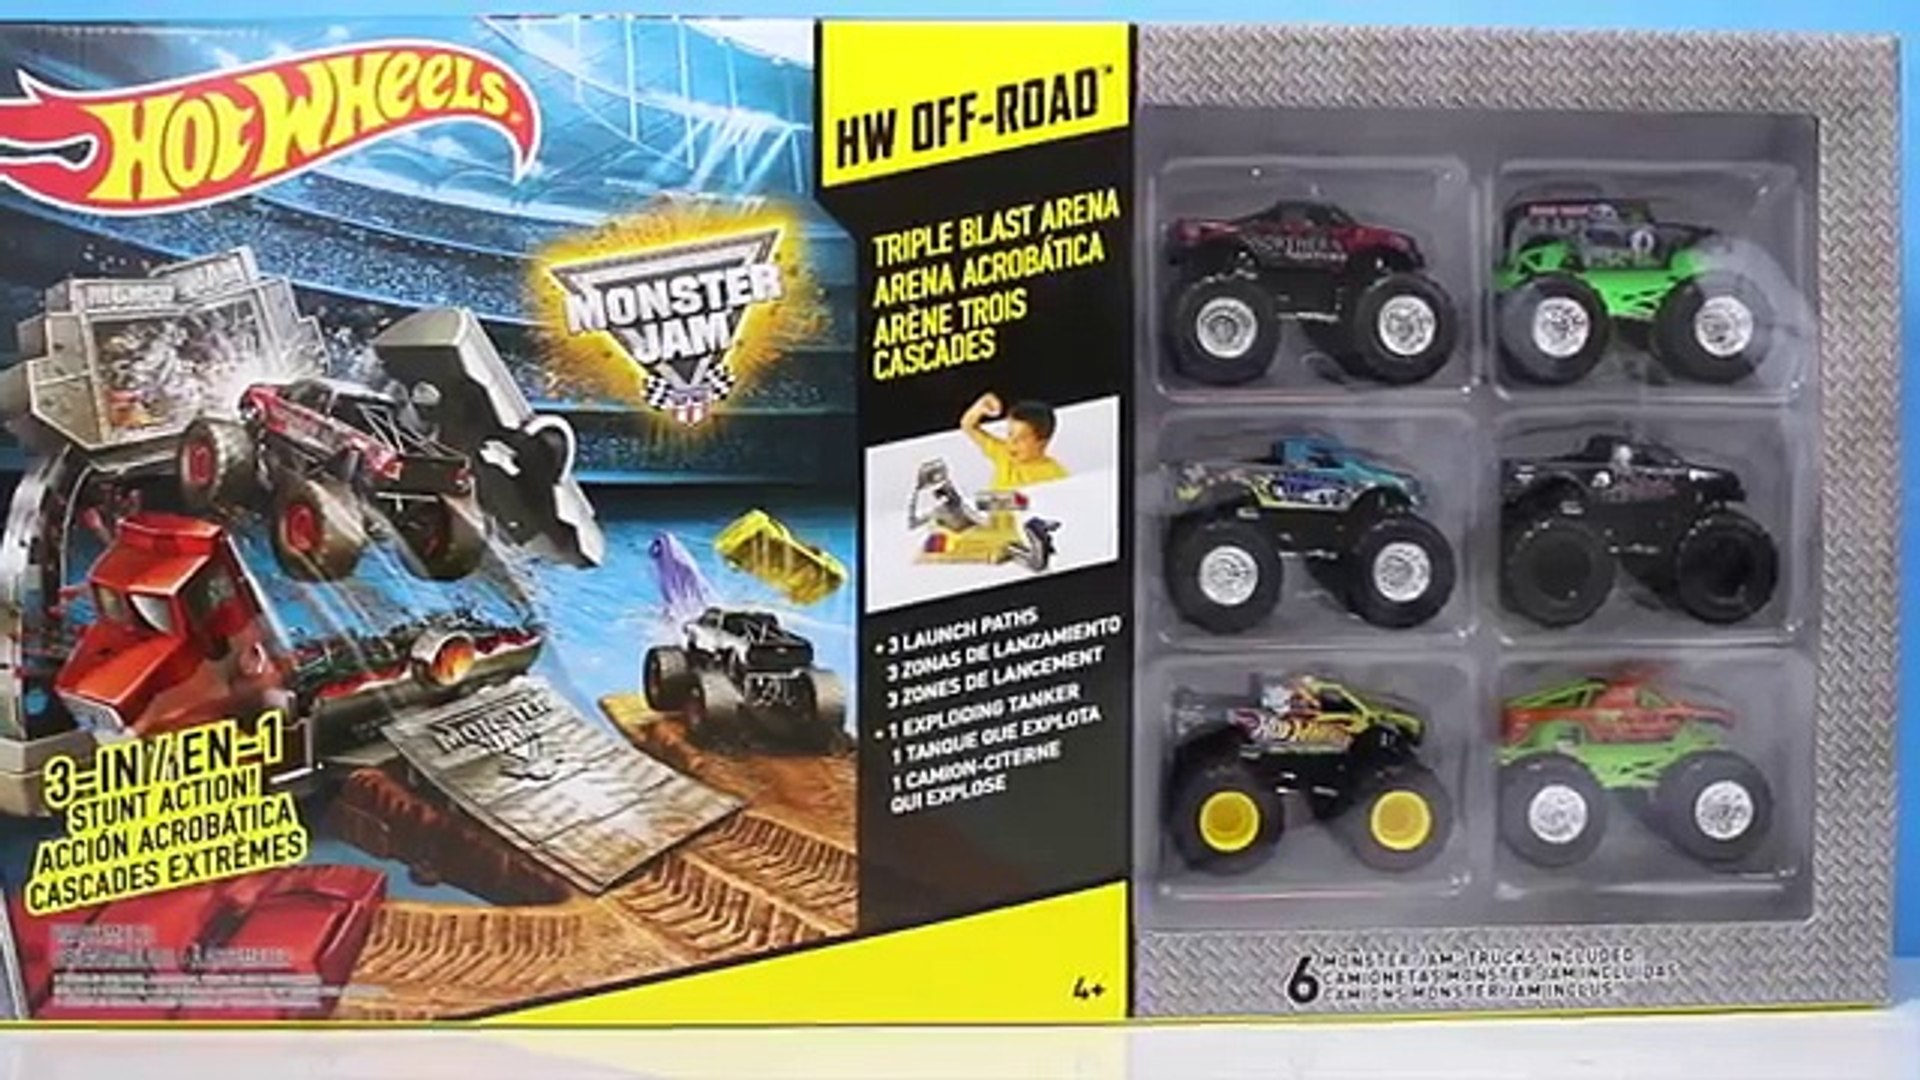 Toy Monster Jam Videos Cheaper Than Retail Price Buy Clothing Accessories And Lifestyle Products For Women Men